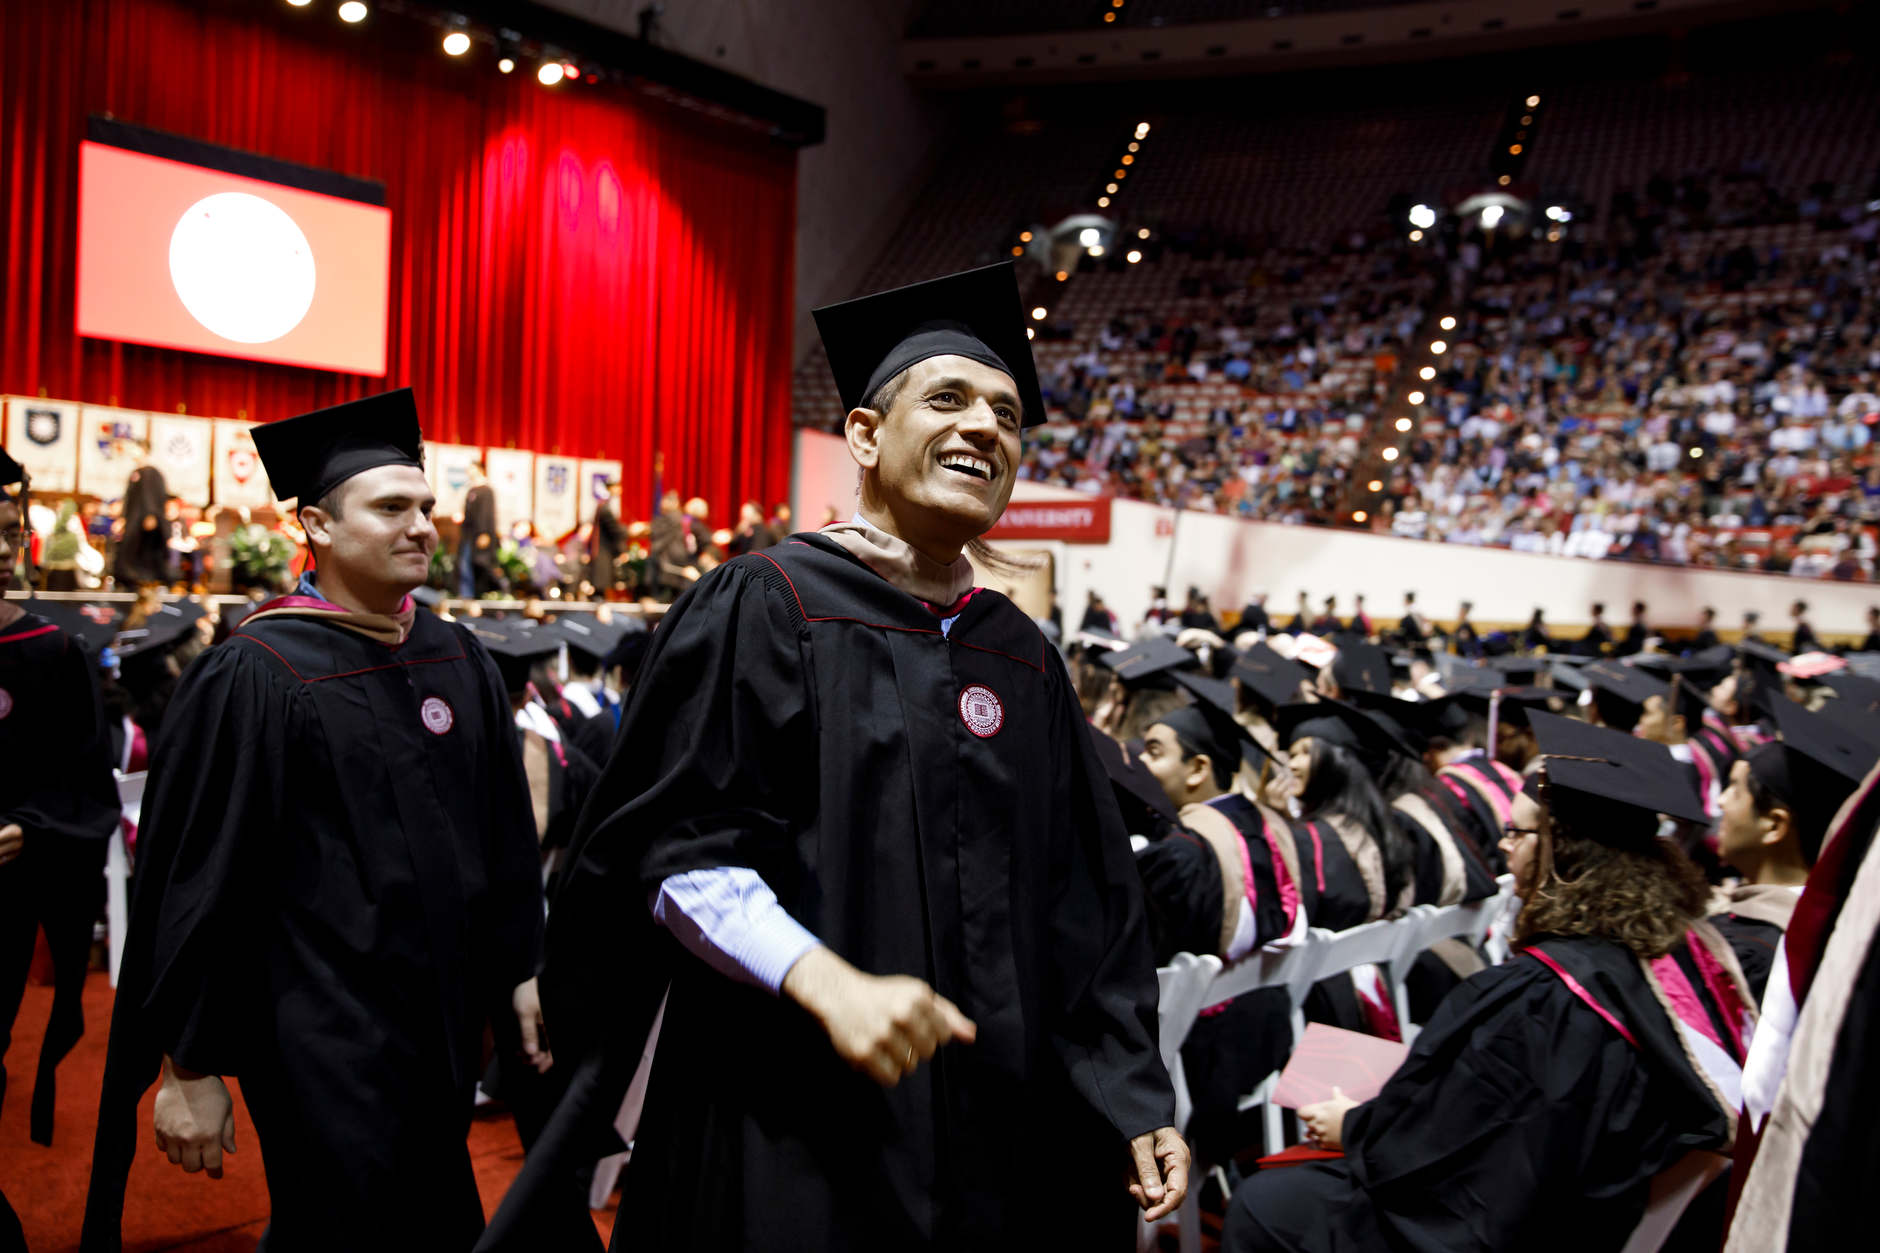 A graduate smiles as he reacts to friends in the audience during the Indiana University Bloomington Graduate Commencement at Assembly Hall on Friday, May 3, 2019. (James Brosher/Indiana University)